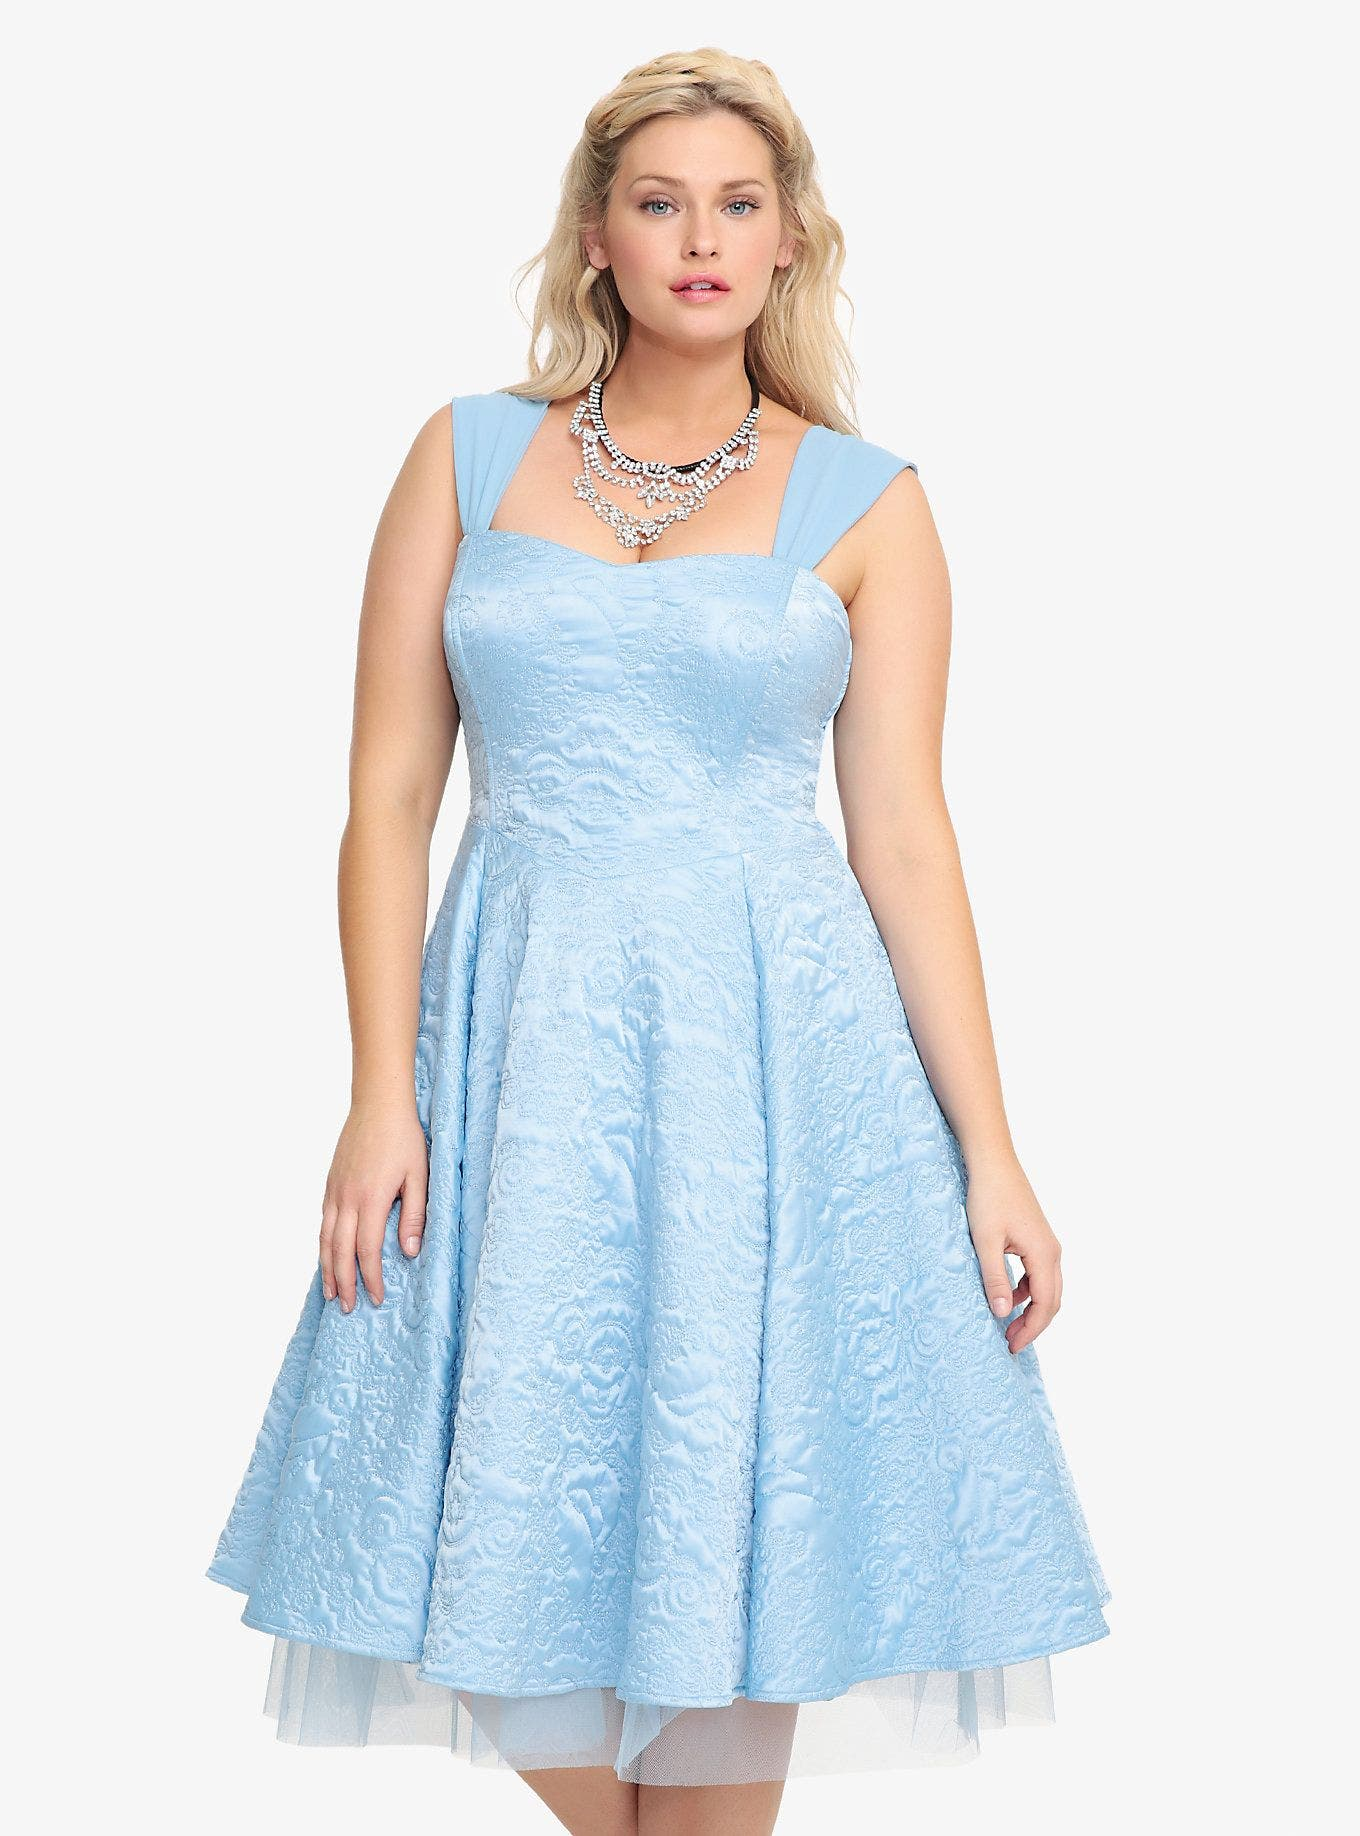 Image Result For Costume Pour Halloween Costume Grande Taille Pour Halloween Notre Top